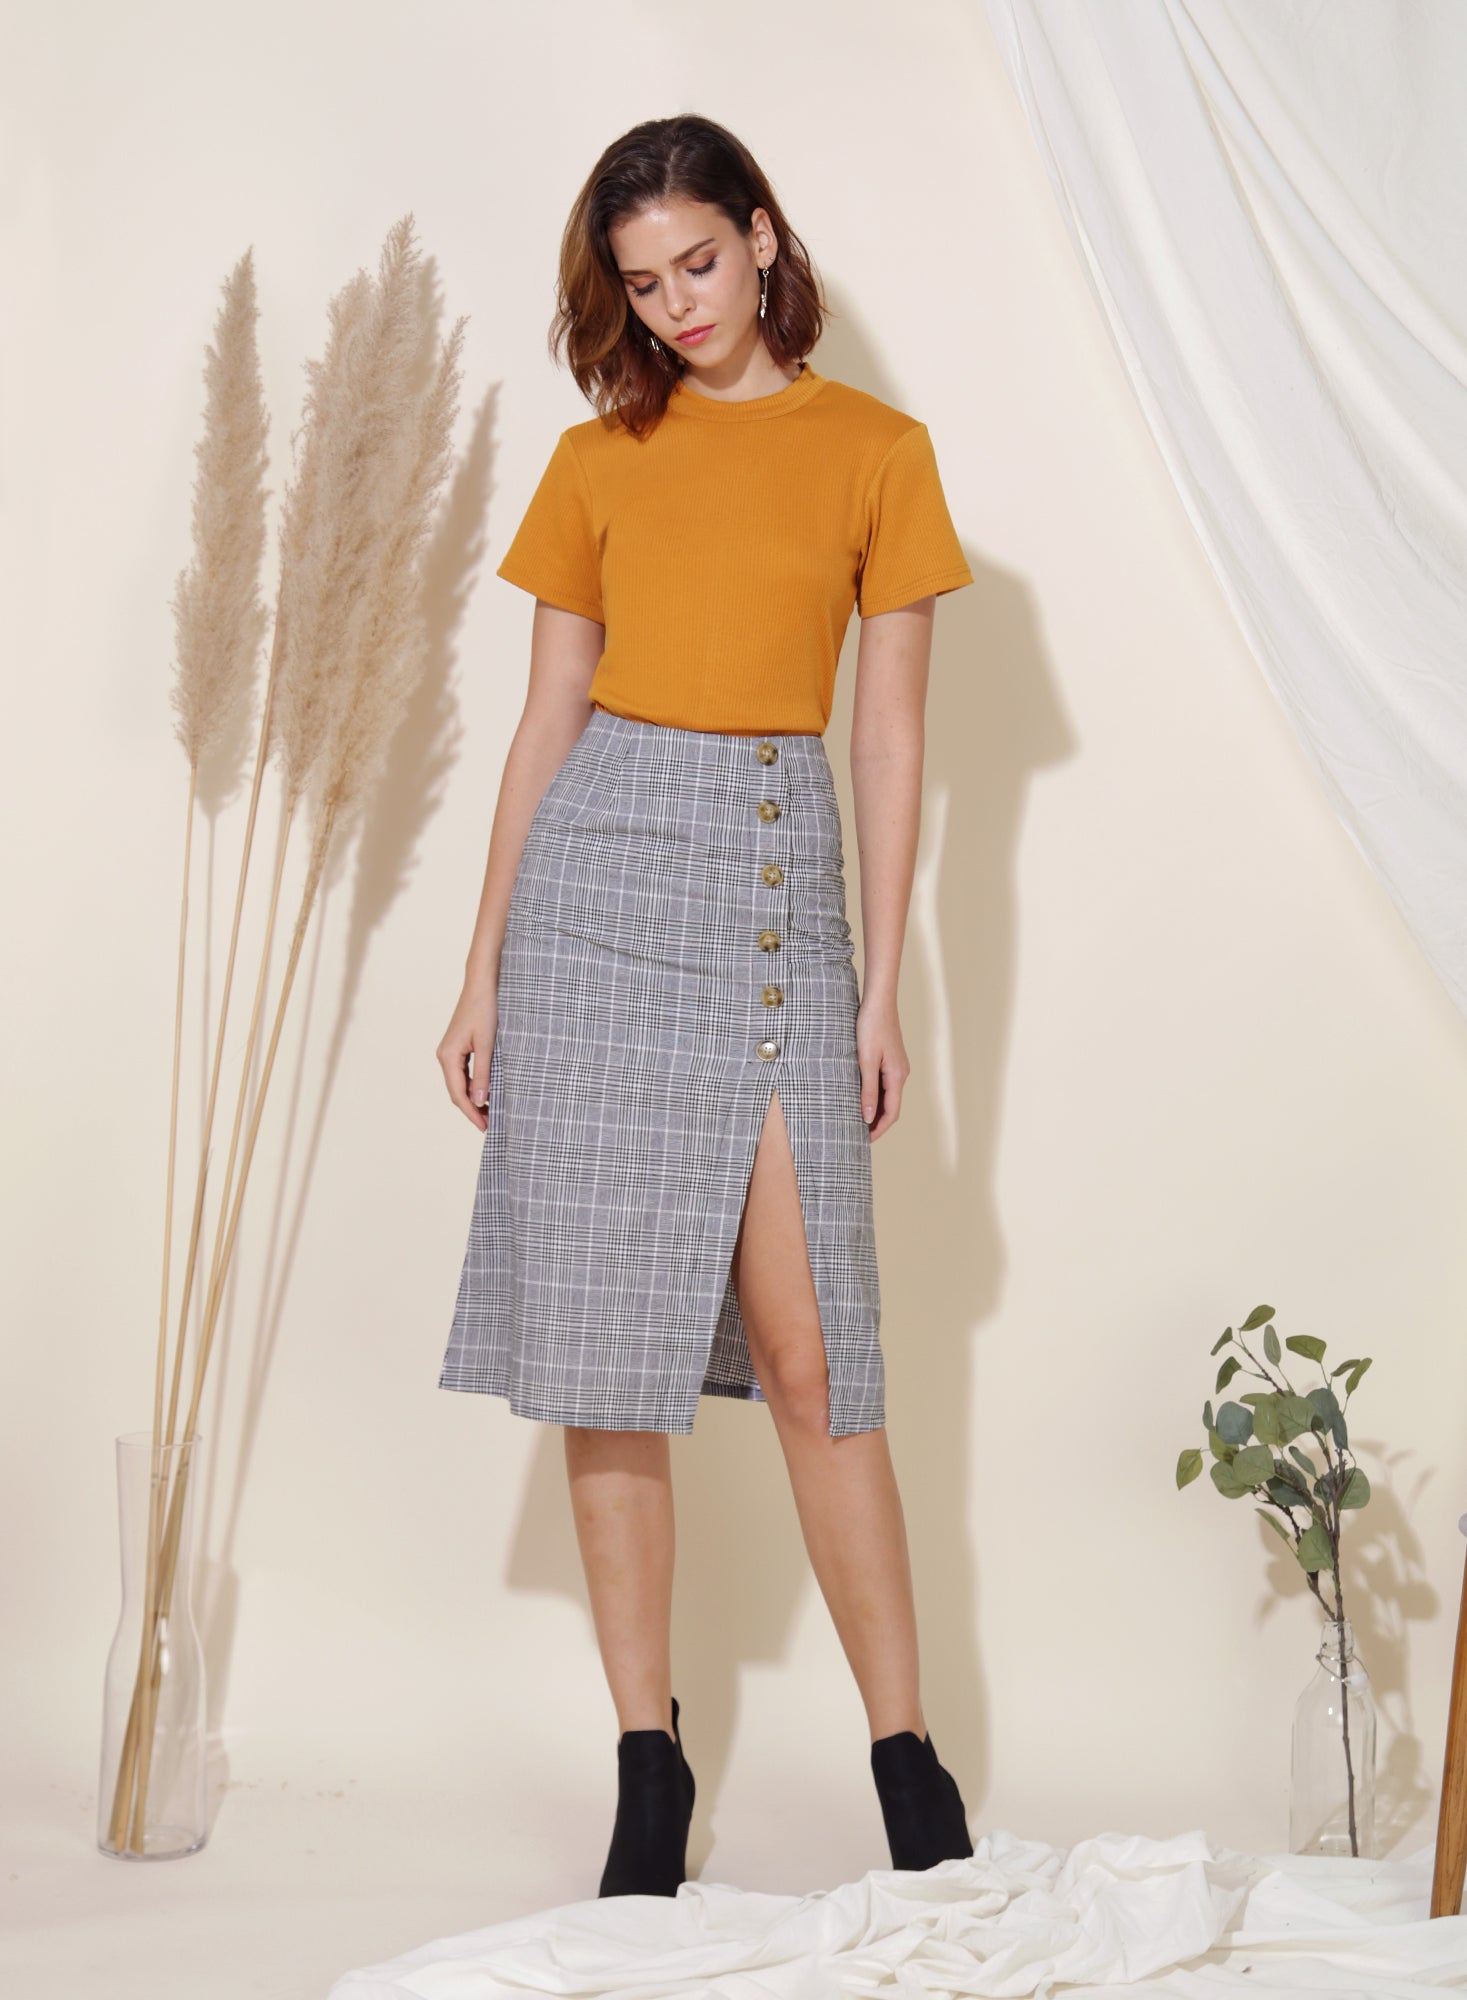 Wonder Linen Midi Skirt (Checks) at $ 38.00 only sold at And Well Dressed Online Fashion Store Singapore